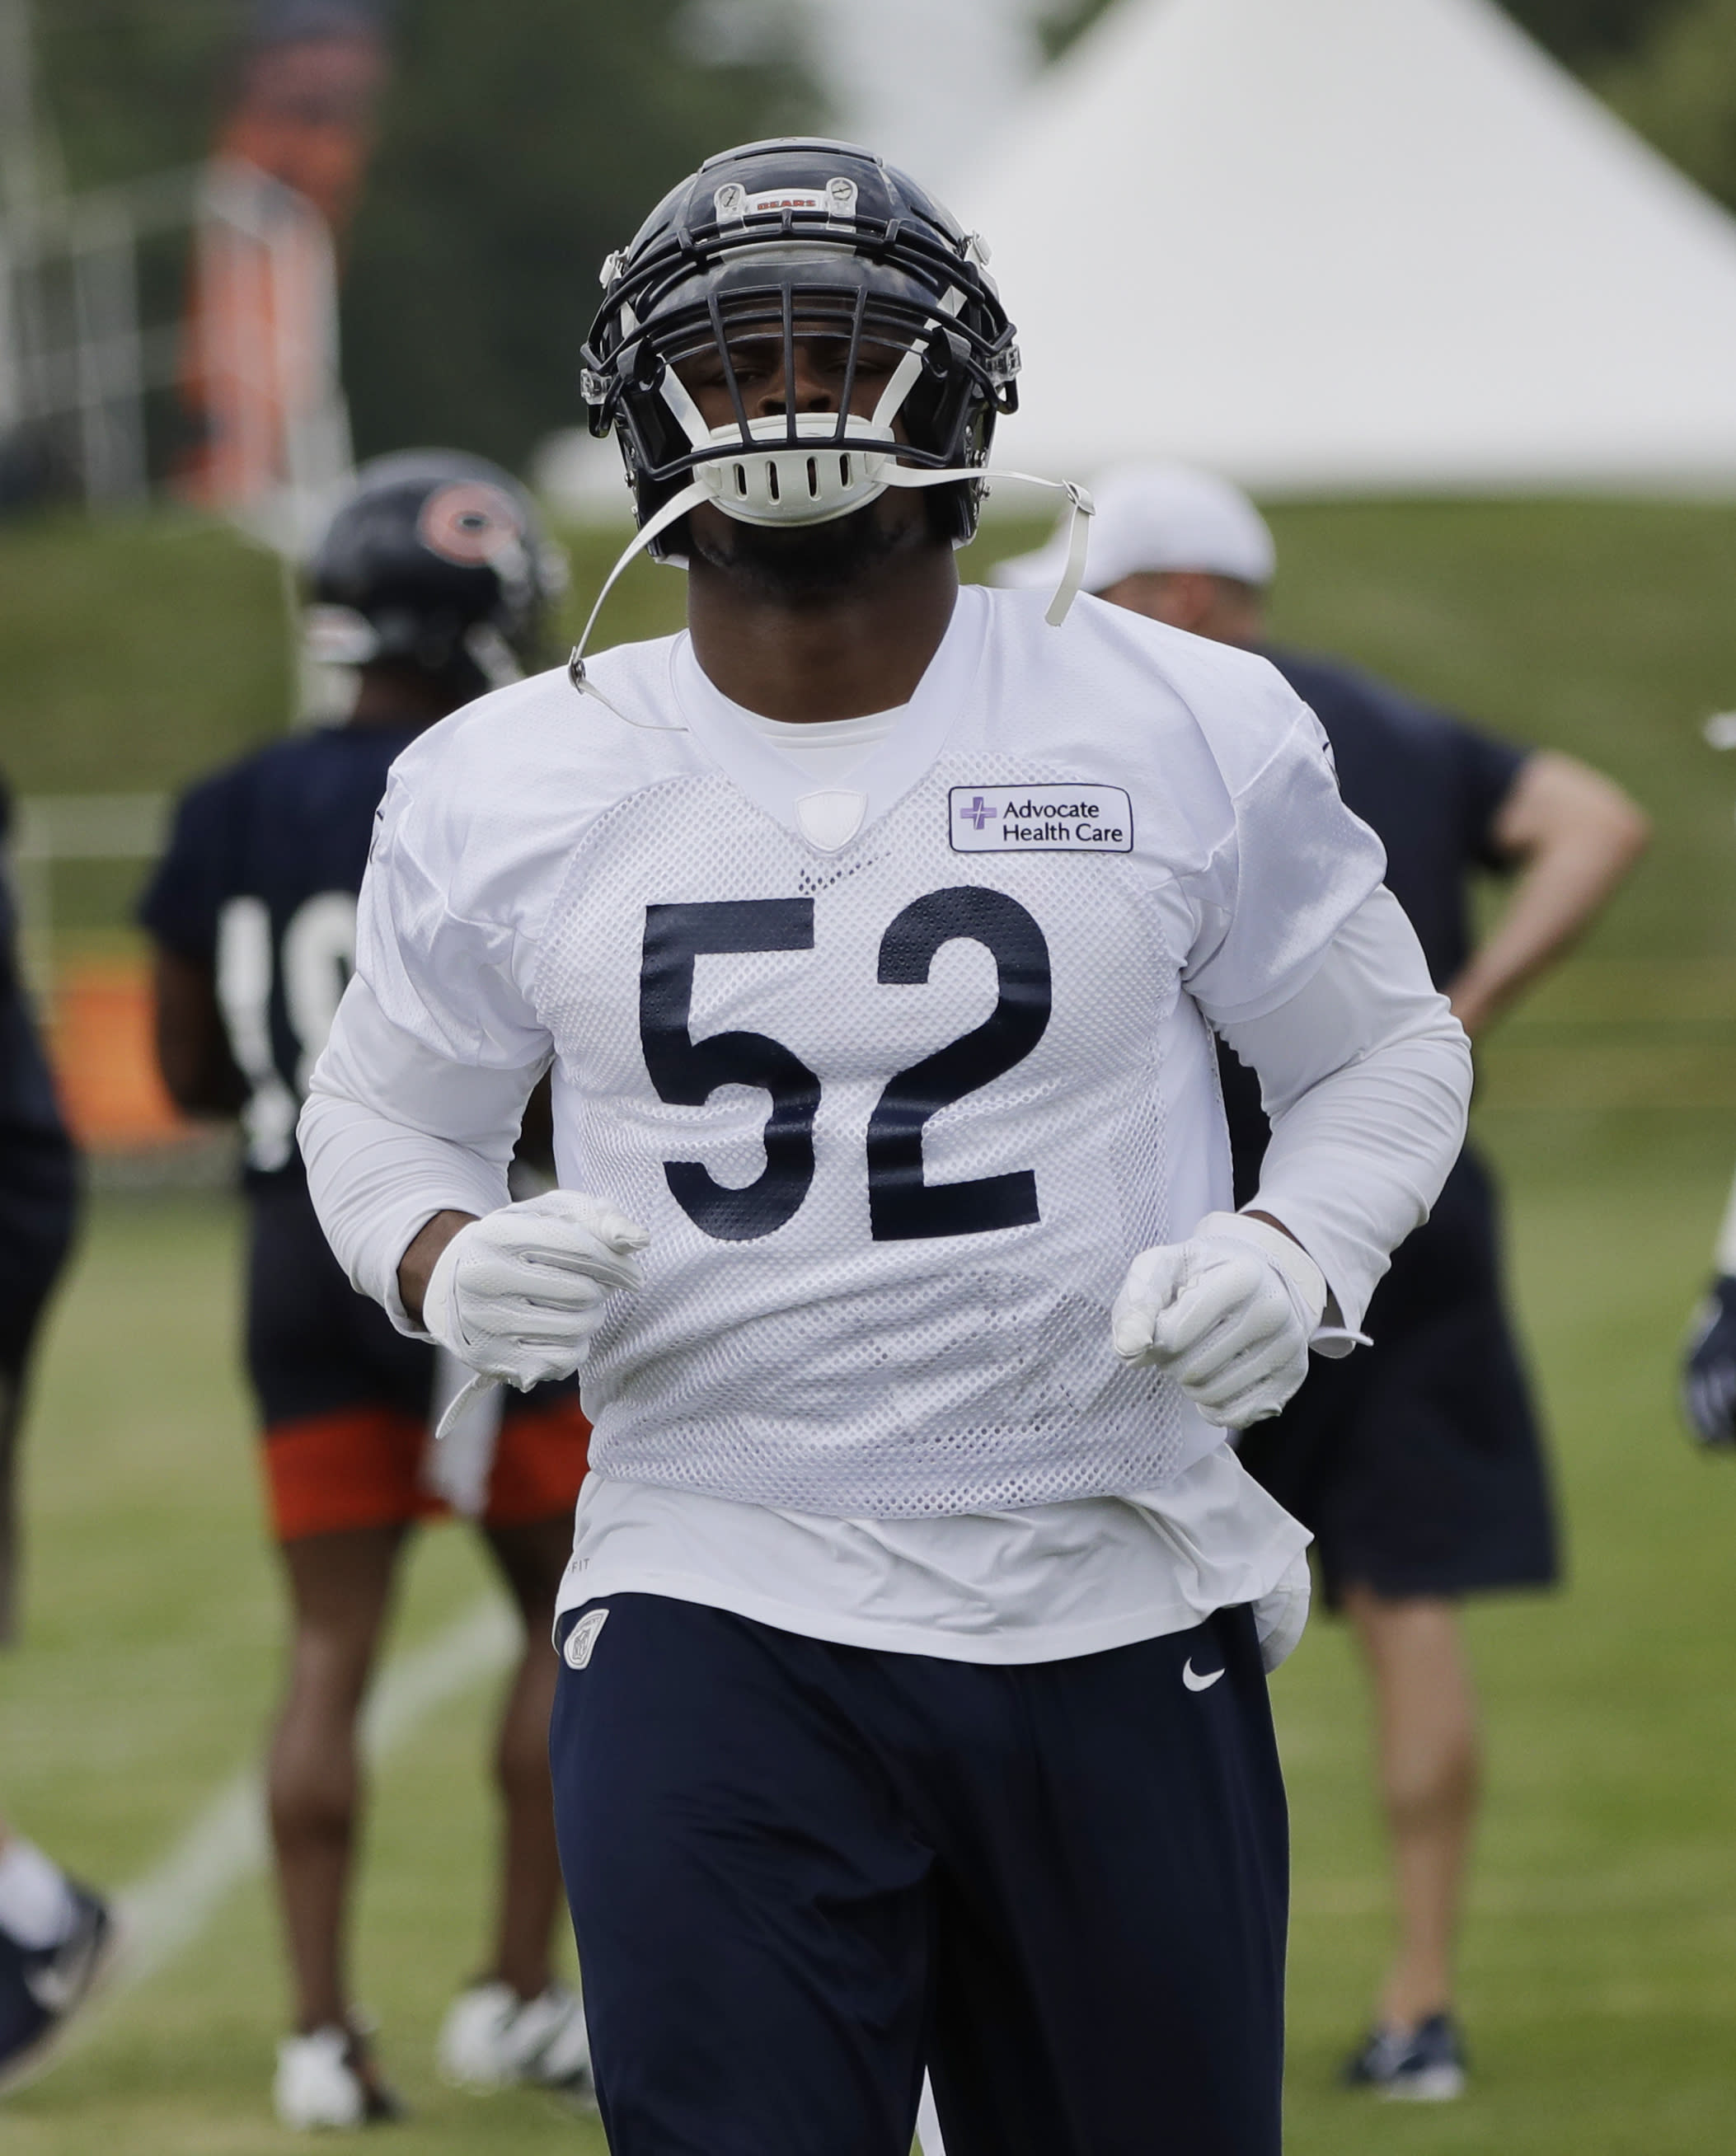 new arrivals 925a0 bf2cd Khalil Mack has more adjusting to do in Year 2 with Bears